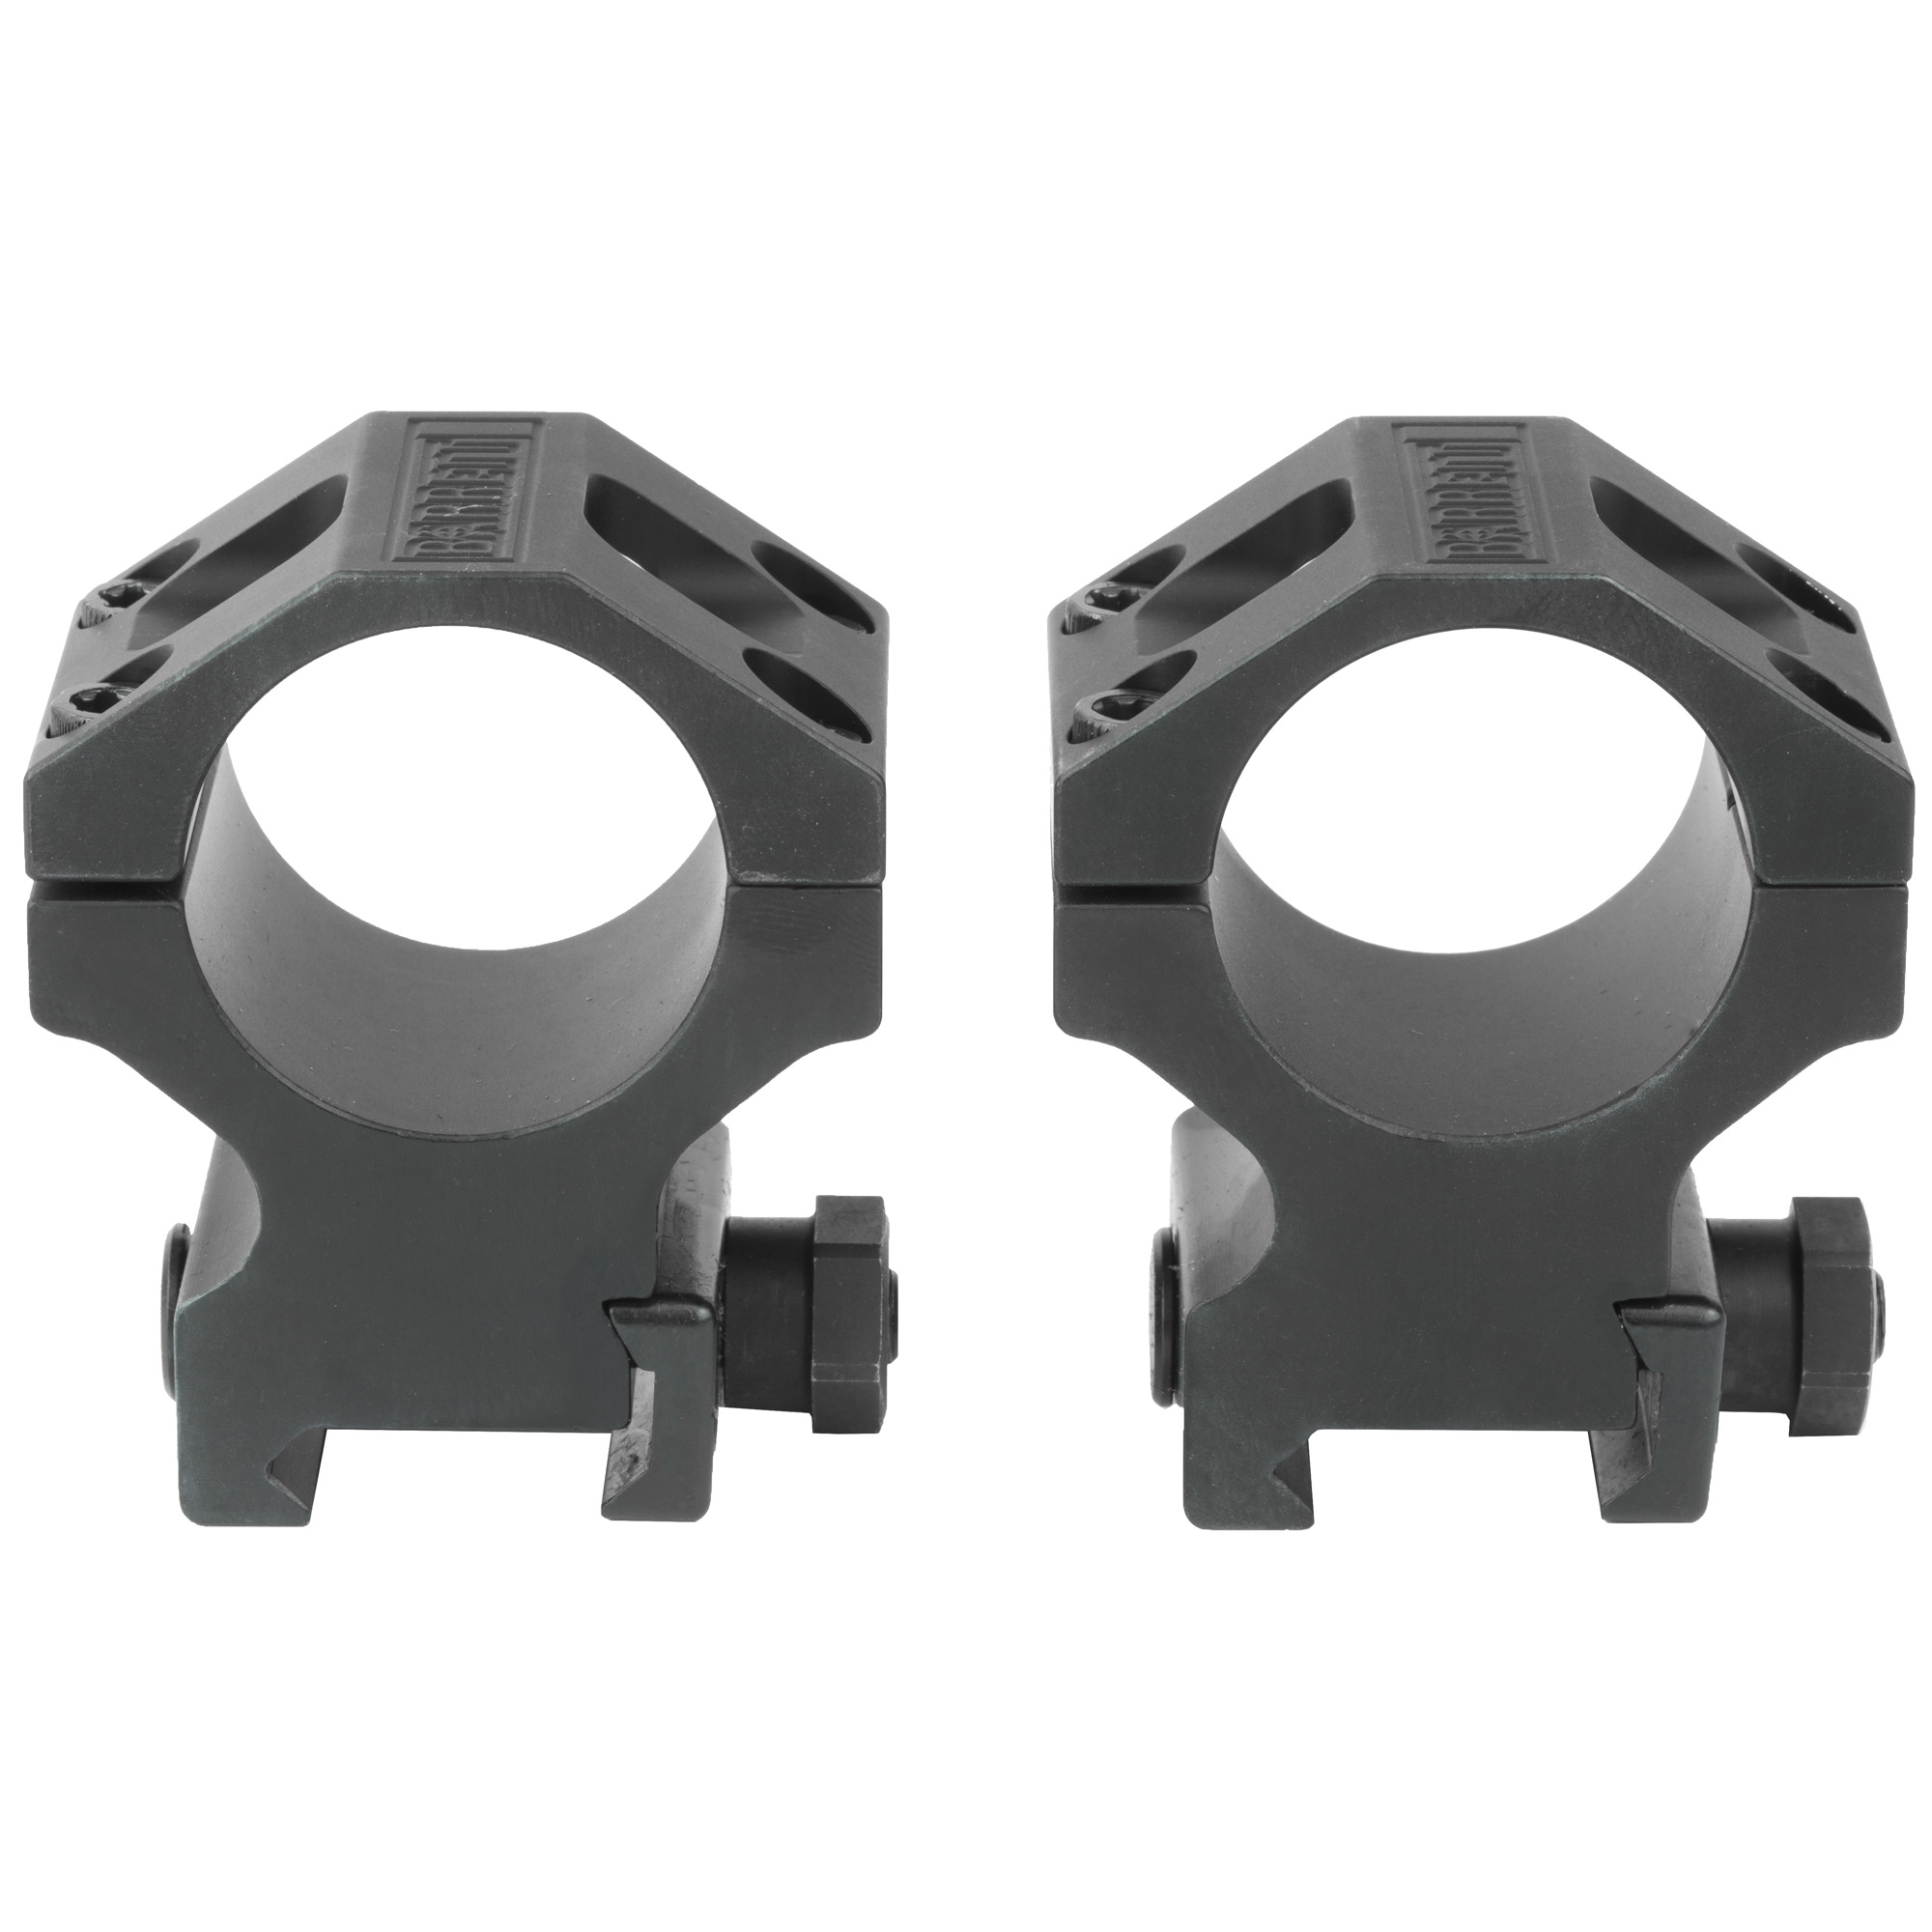 "Barrett Rings High 1.3"" 30mm Blk"